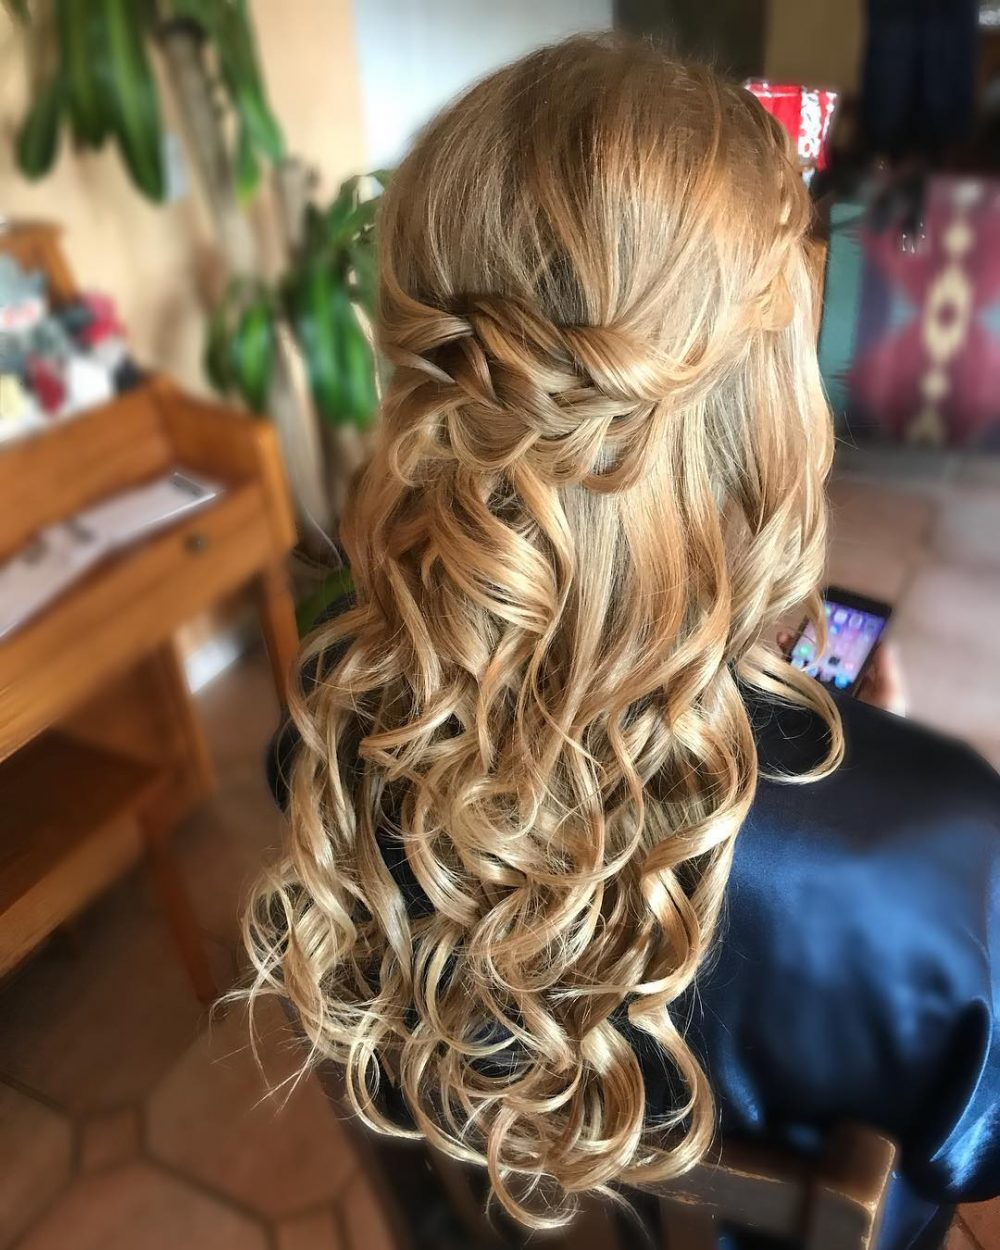 27 Gorgeous Wedding Hairstyles For Long Hair In 2019